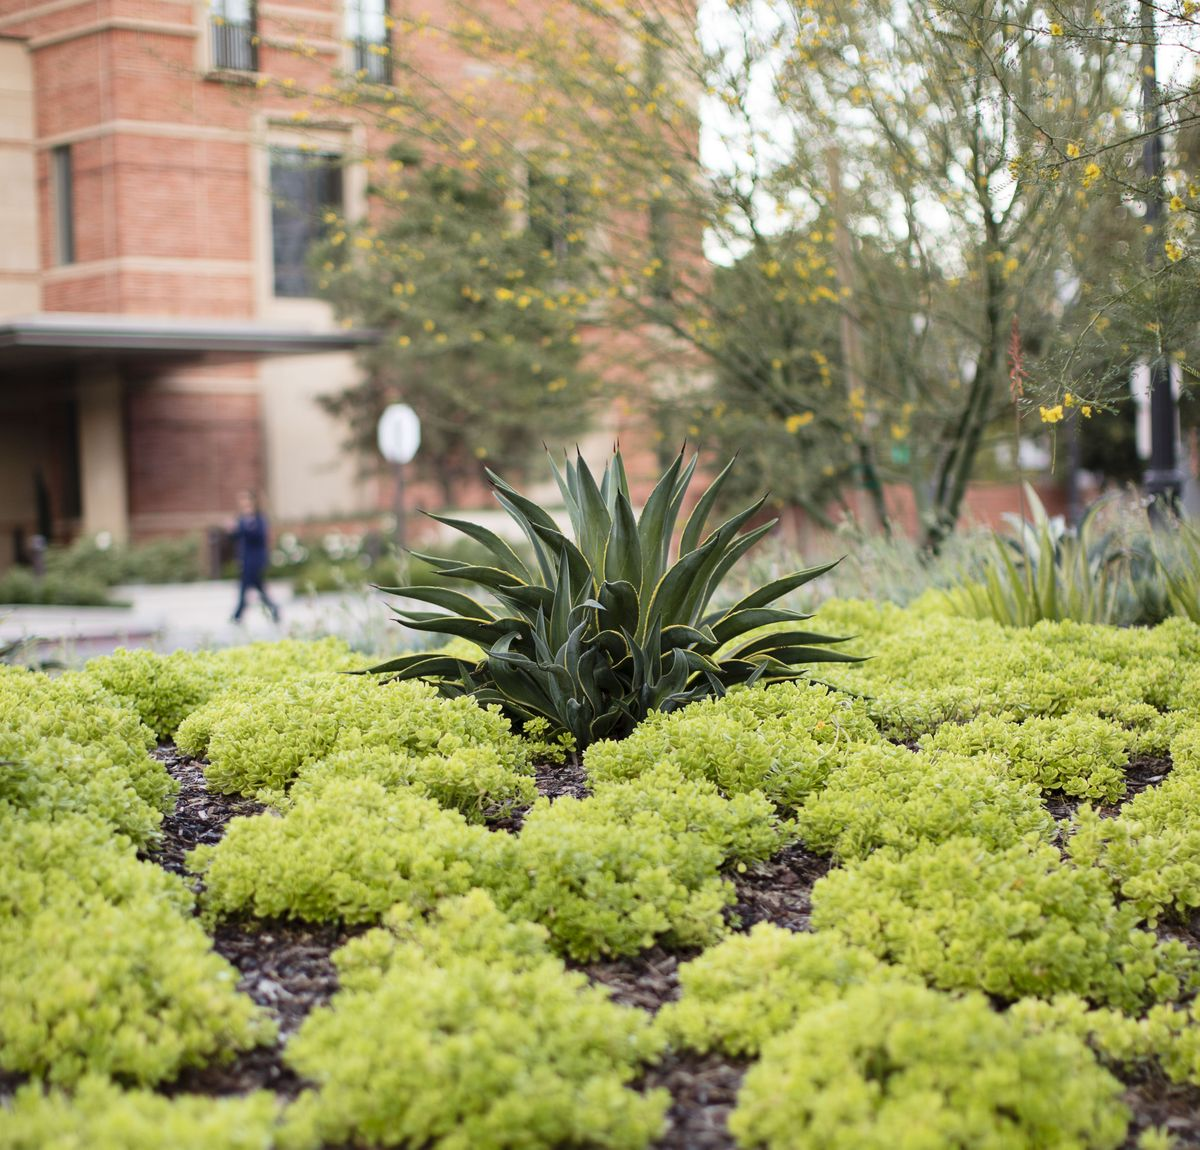 Landscaping around the UCLA Meyer and Renee Luskin Conference Center